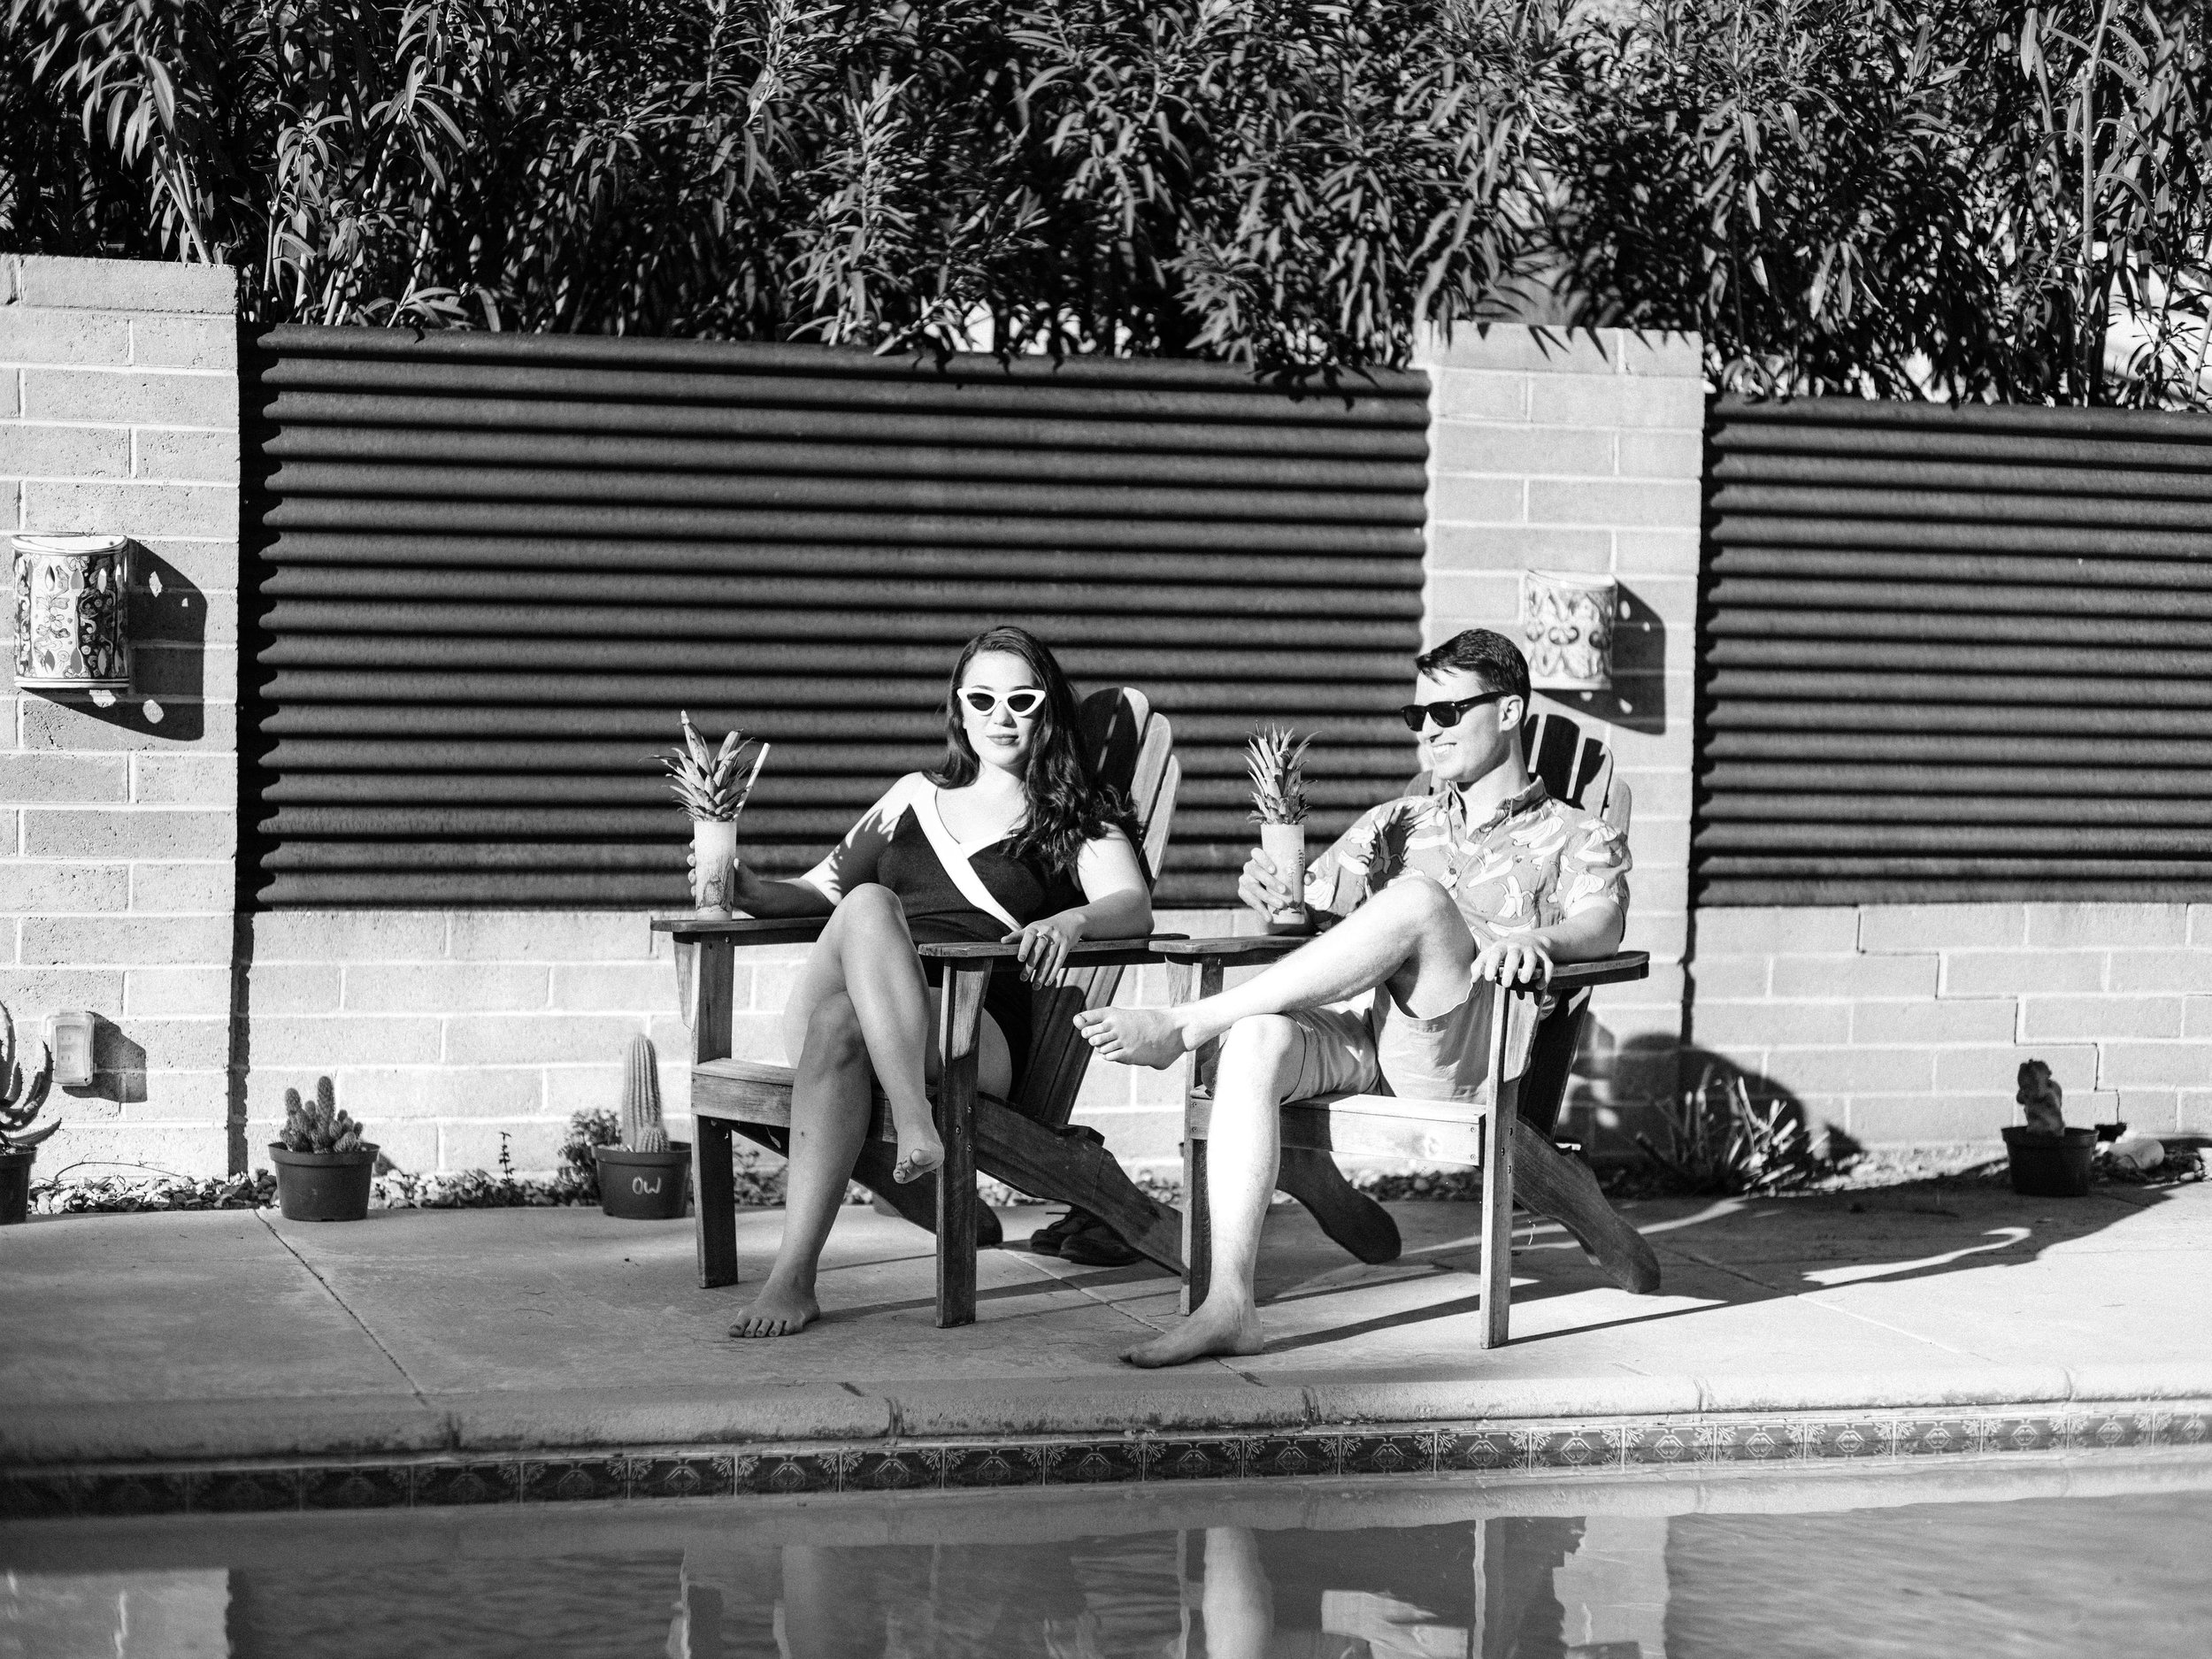 Andy-Shepard-Photography-Tucson-Pool-Party-54.jpg